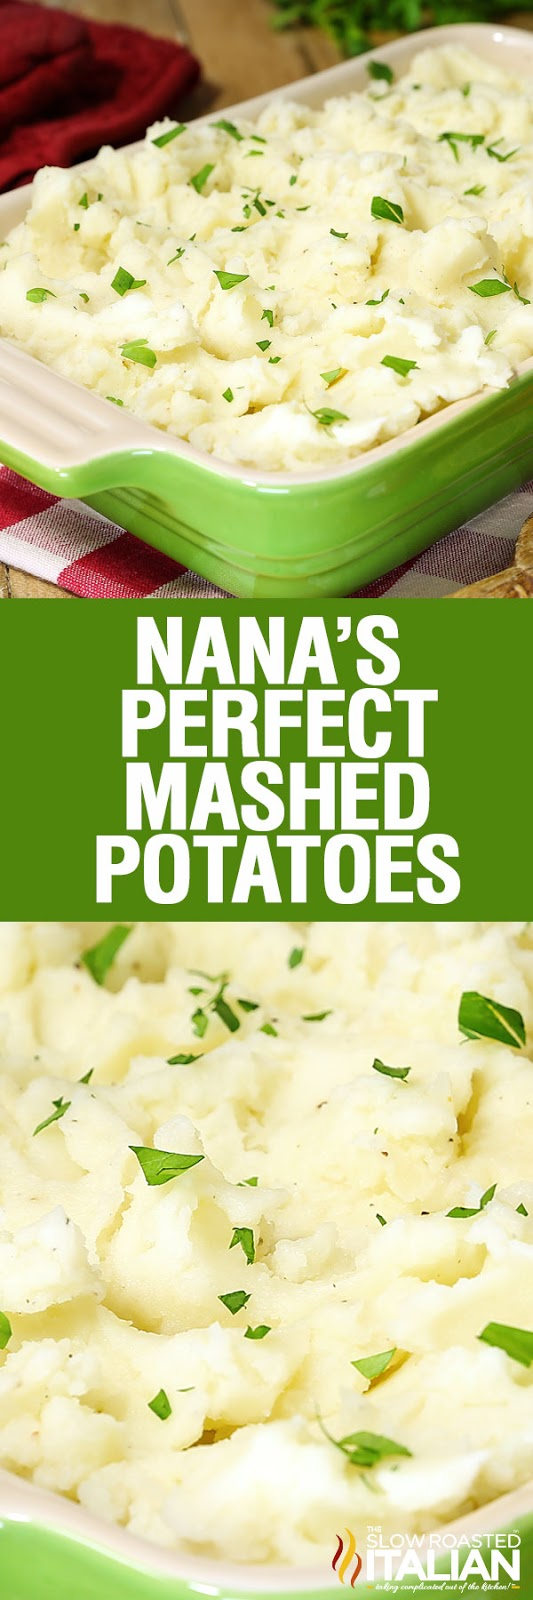 Perfect Everyday Mashed Potatoes are perfectly buttery and creamy with the ideal texture and flavor with a special ingredient added to give a little something extra. The perfect side dish that is easy enough to make any night of the week and delicious enough for a special occasion. With make-ahead instructions, these are the ultimate weekday mashed potatoes!